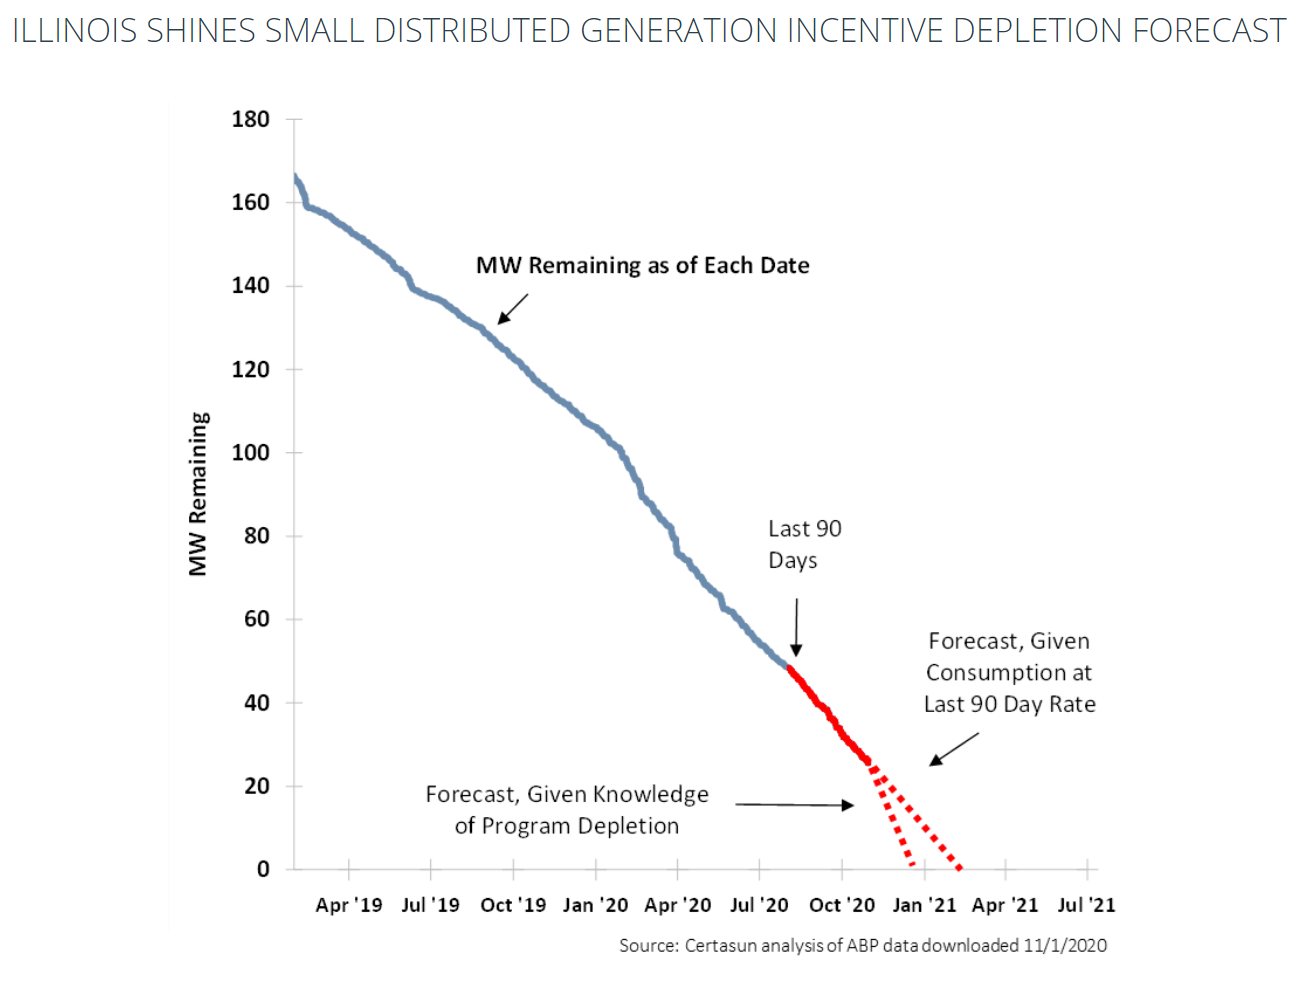 Illinois Solar Incentives Running Out - Certasun Depletion Forecast